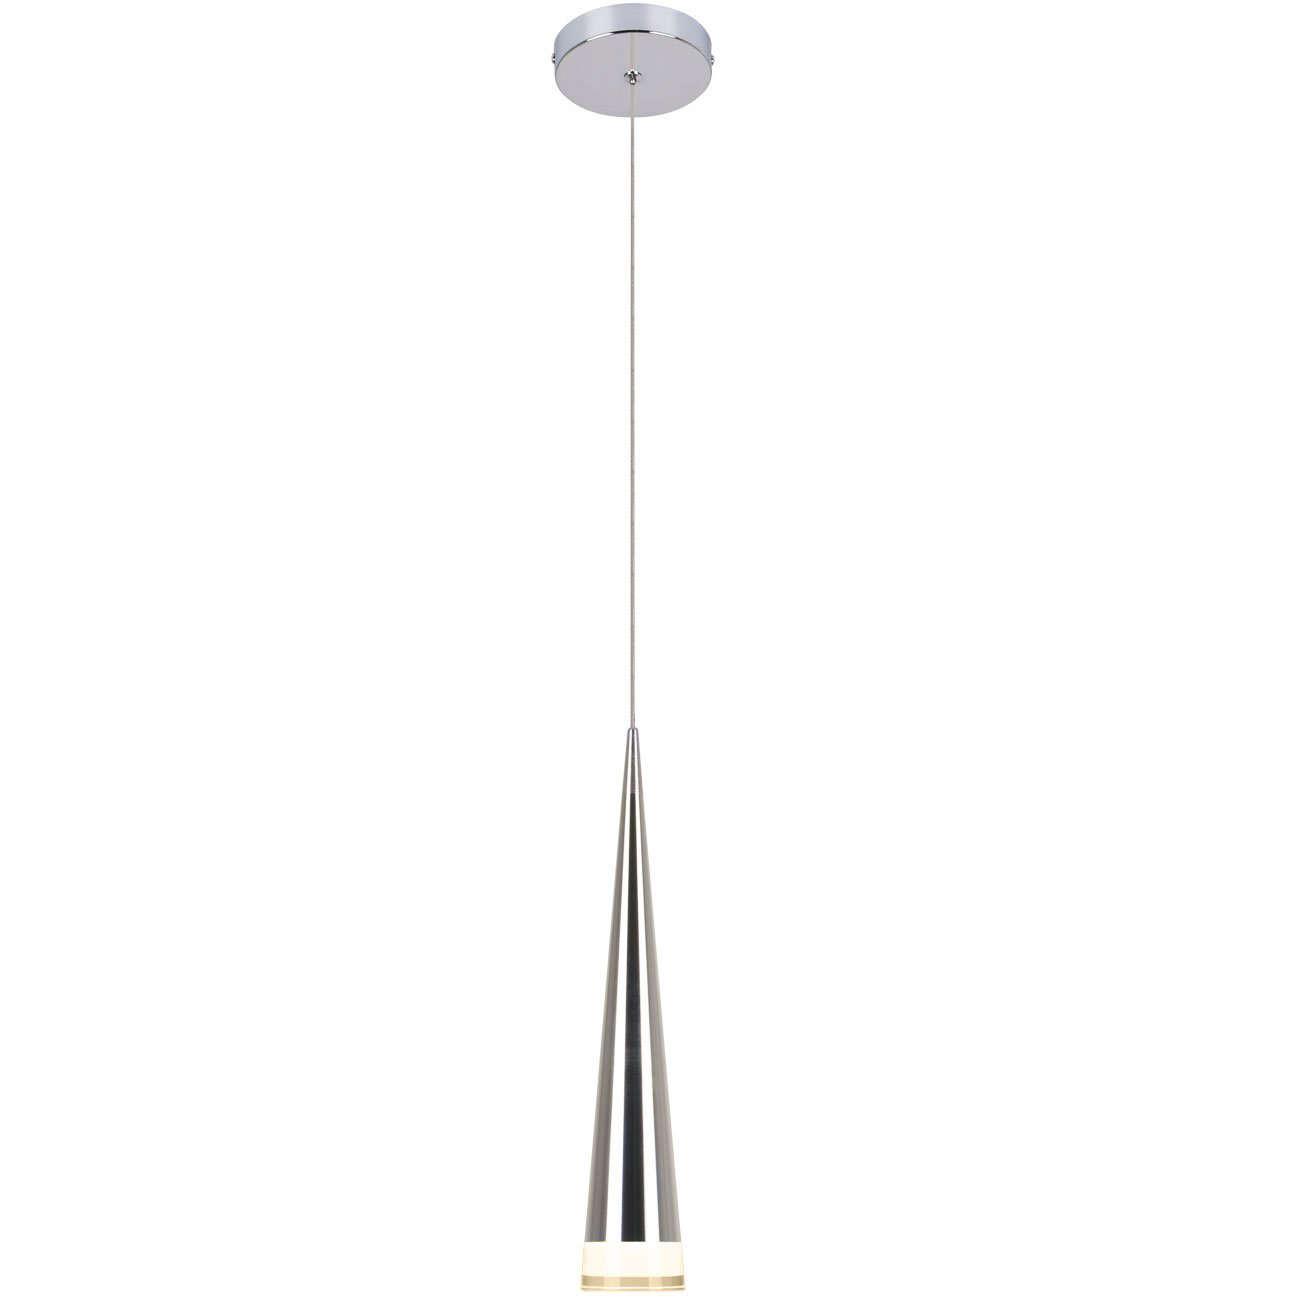 Unitary Brand Modern Nature White LED Acrylic Pendant Light Max 5w Plating Finish by Unitary (Image #1)